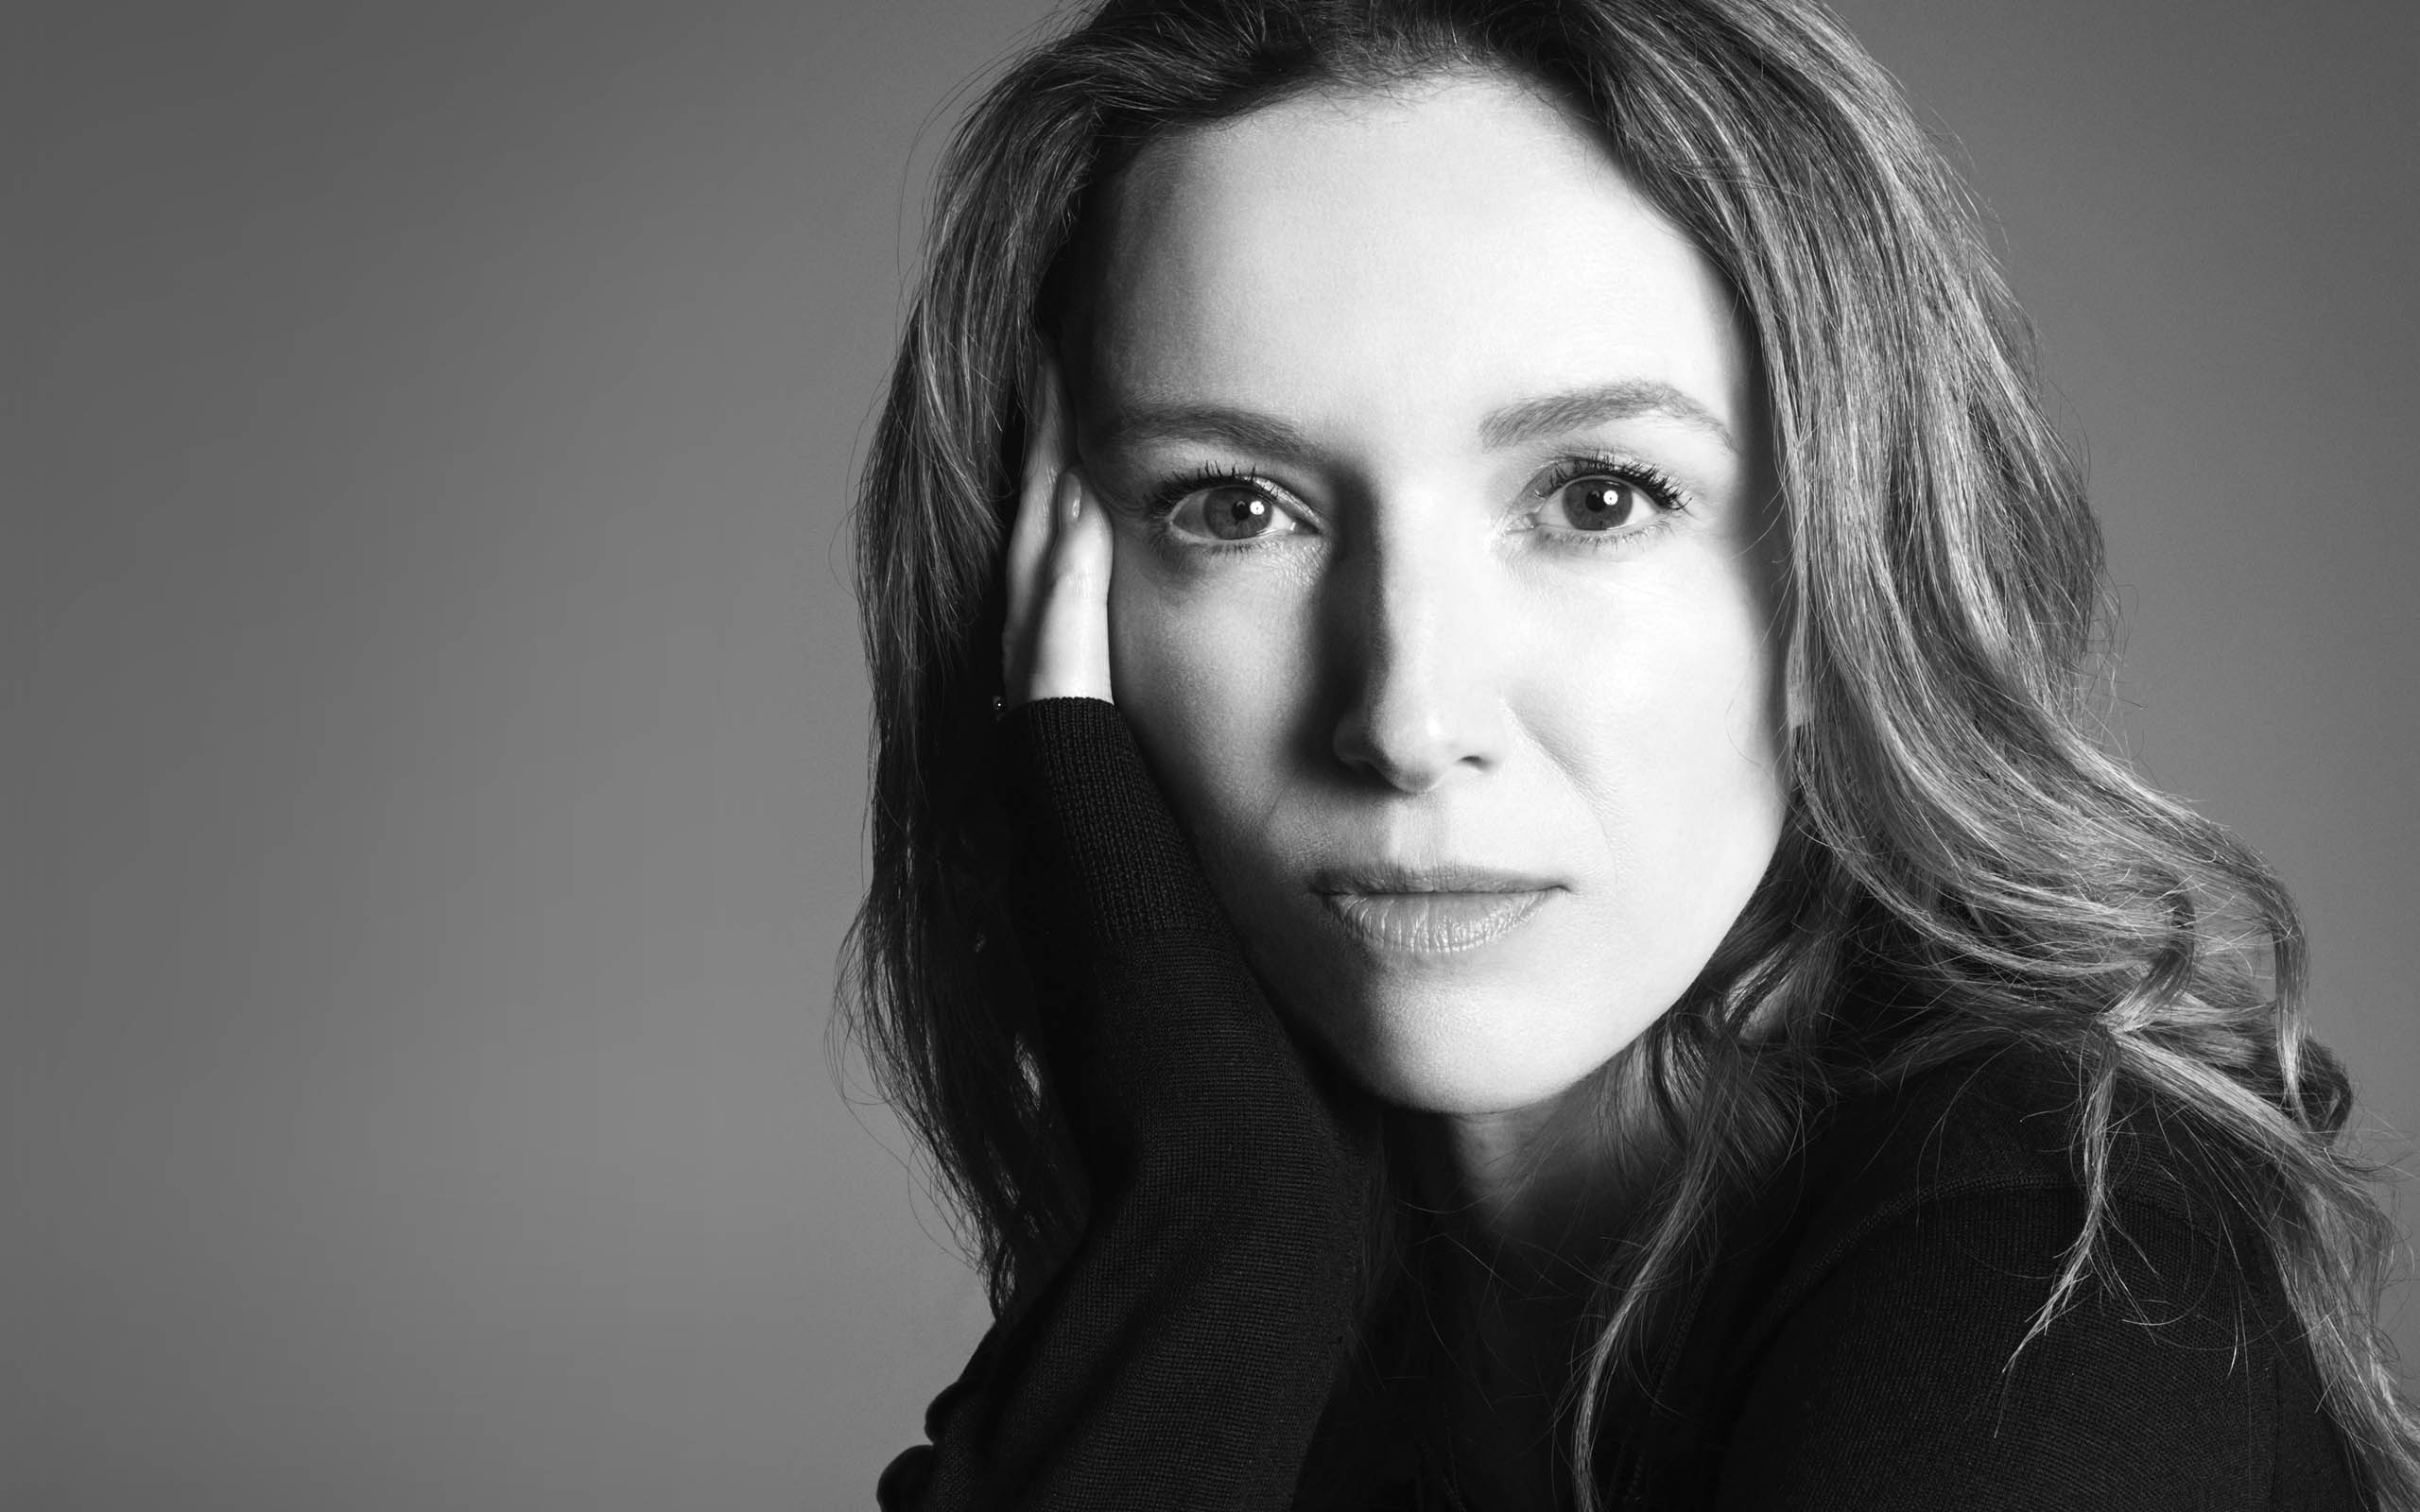 Clare Waight Keller Named The Artistic Director Of Givenchy